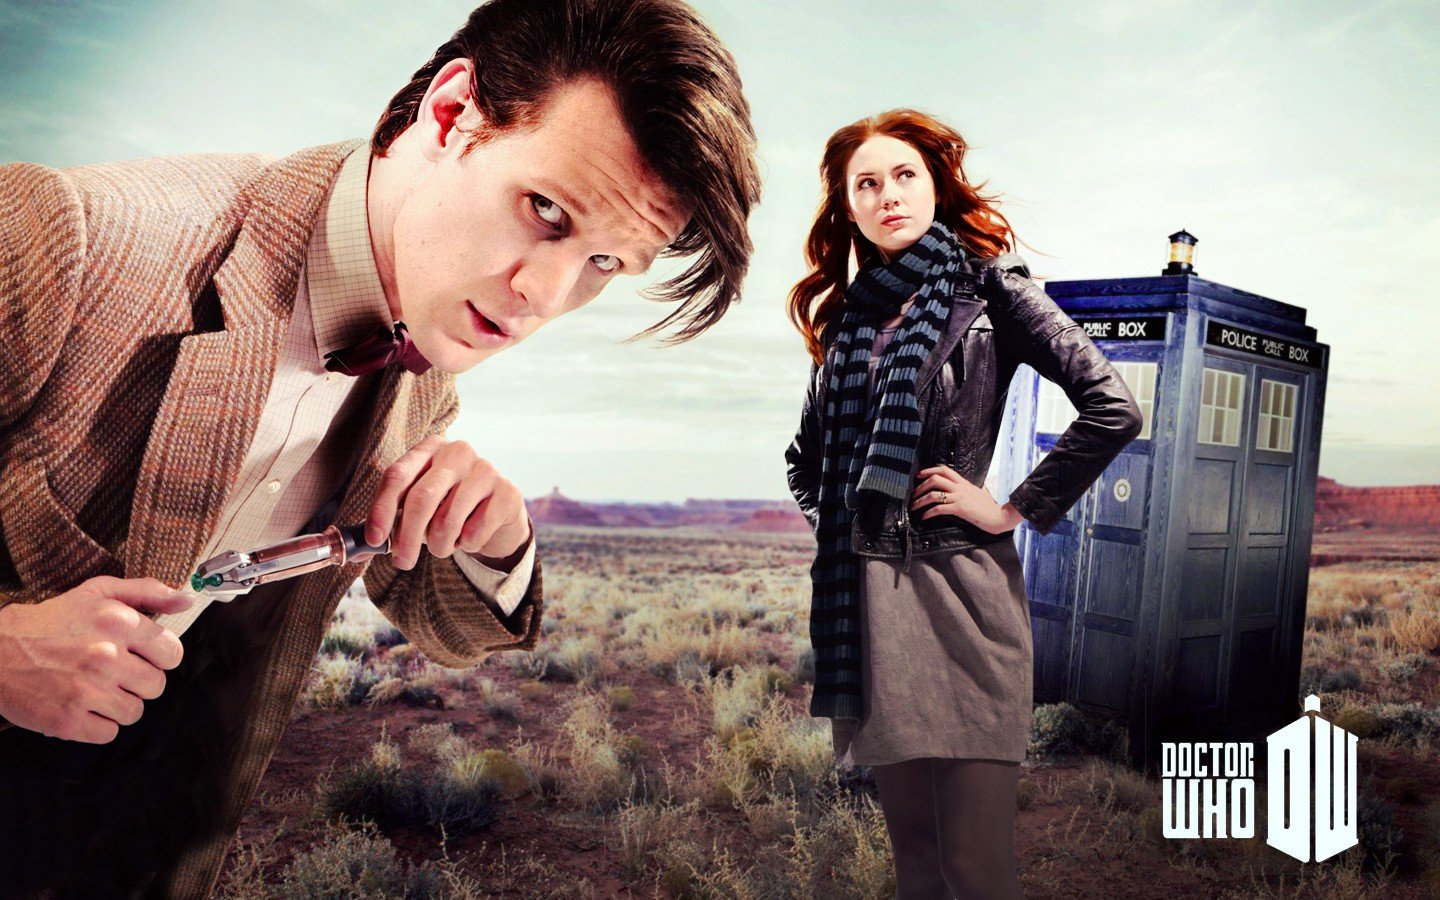 Doctor Who Matt Smith Karen Gillan Amy Pond Tardis Eleventh